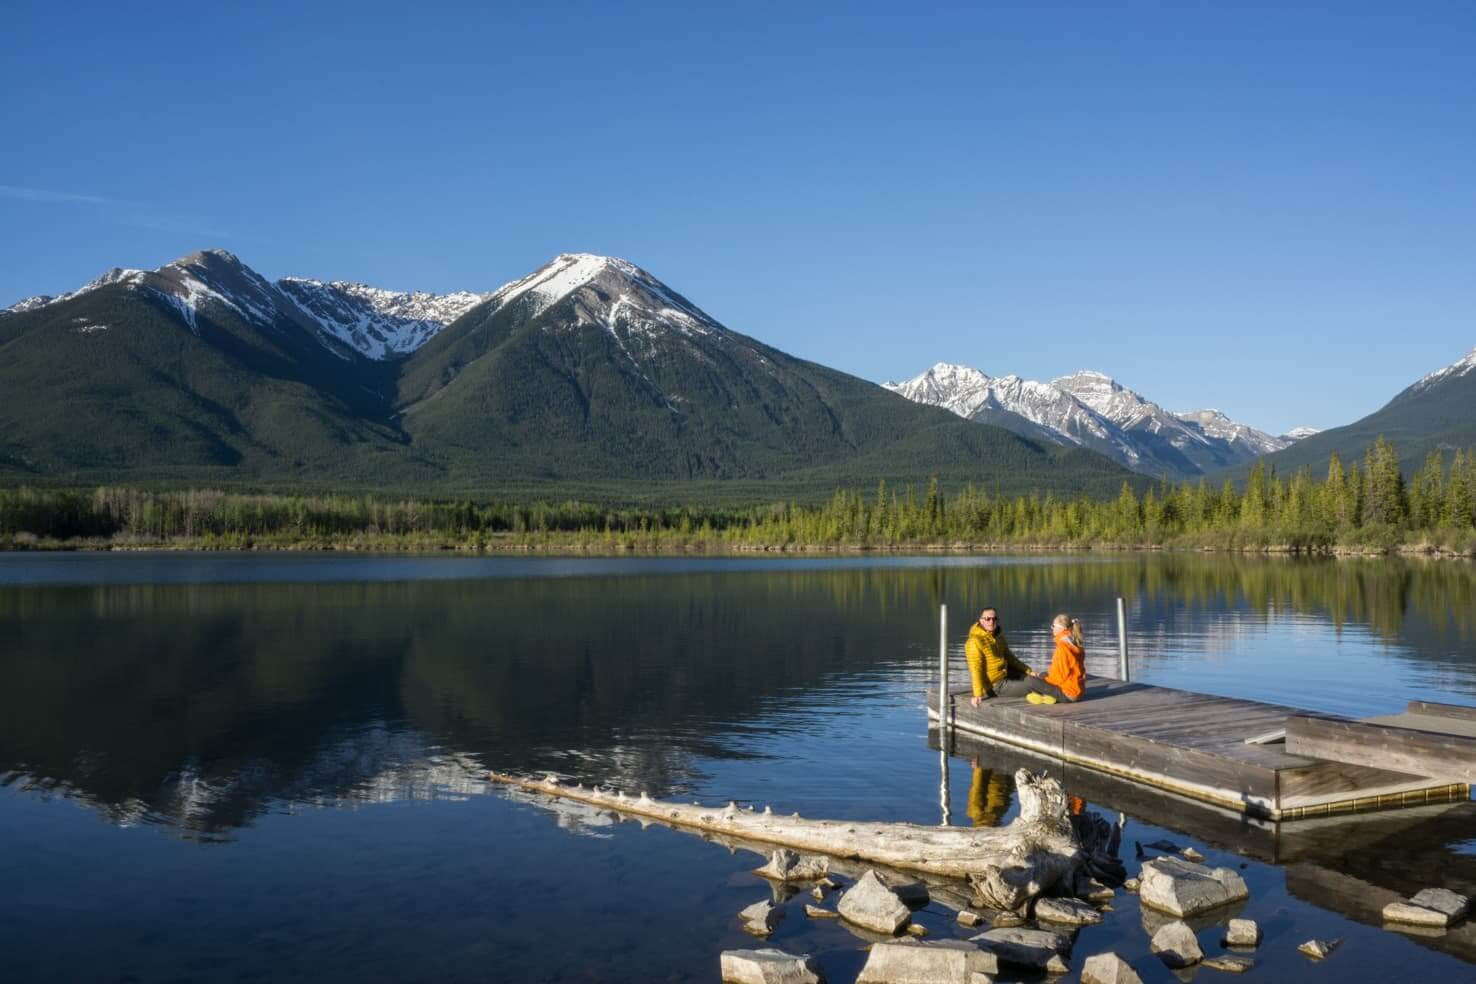 100 best things to do in Banff National Park, Canada - Have a morning picnic at Vermilion Lakes